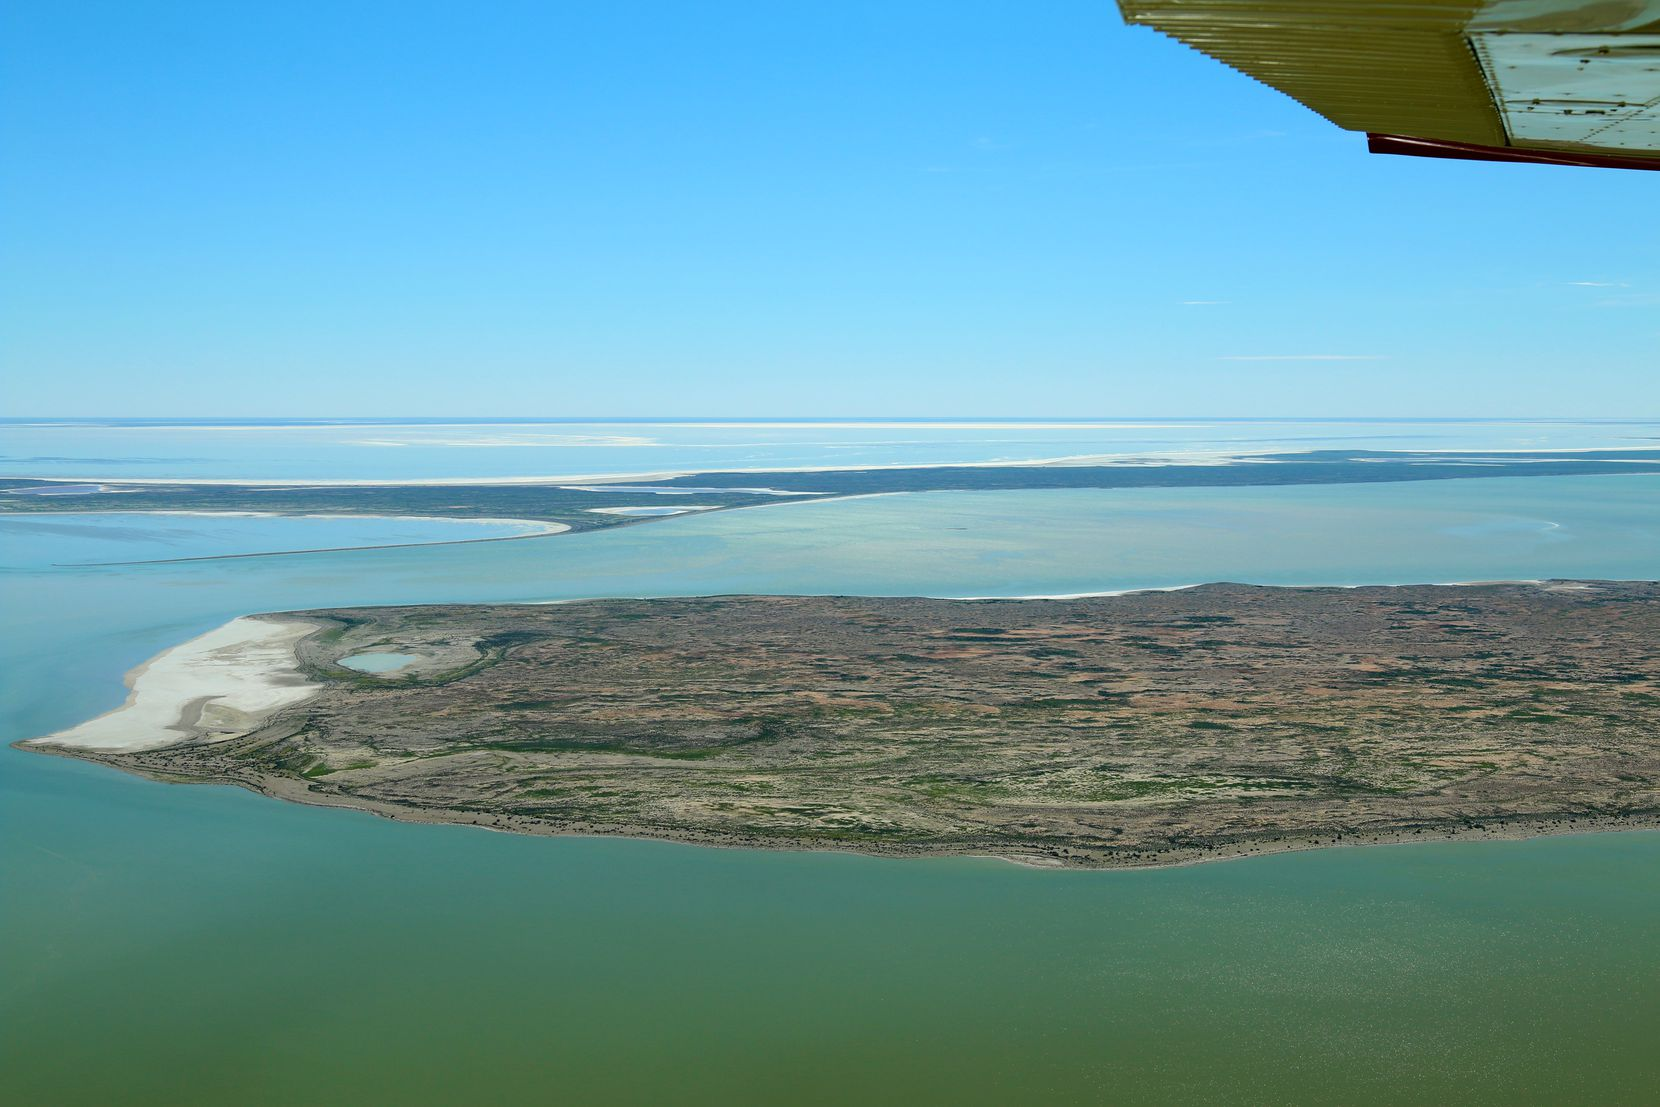 Flying over Kati Thanda-Lake Eyre is a once-in-a-lifetime treat. See it in flood, and you'll join a select, lucky few.